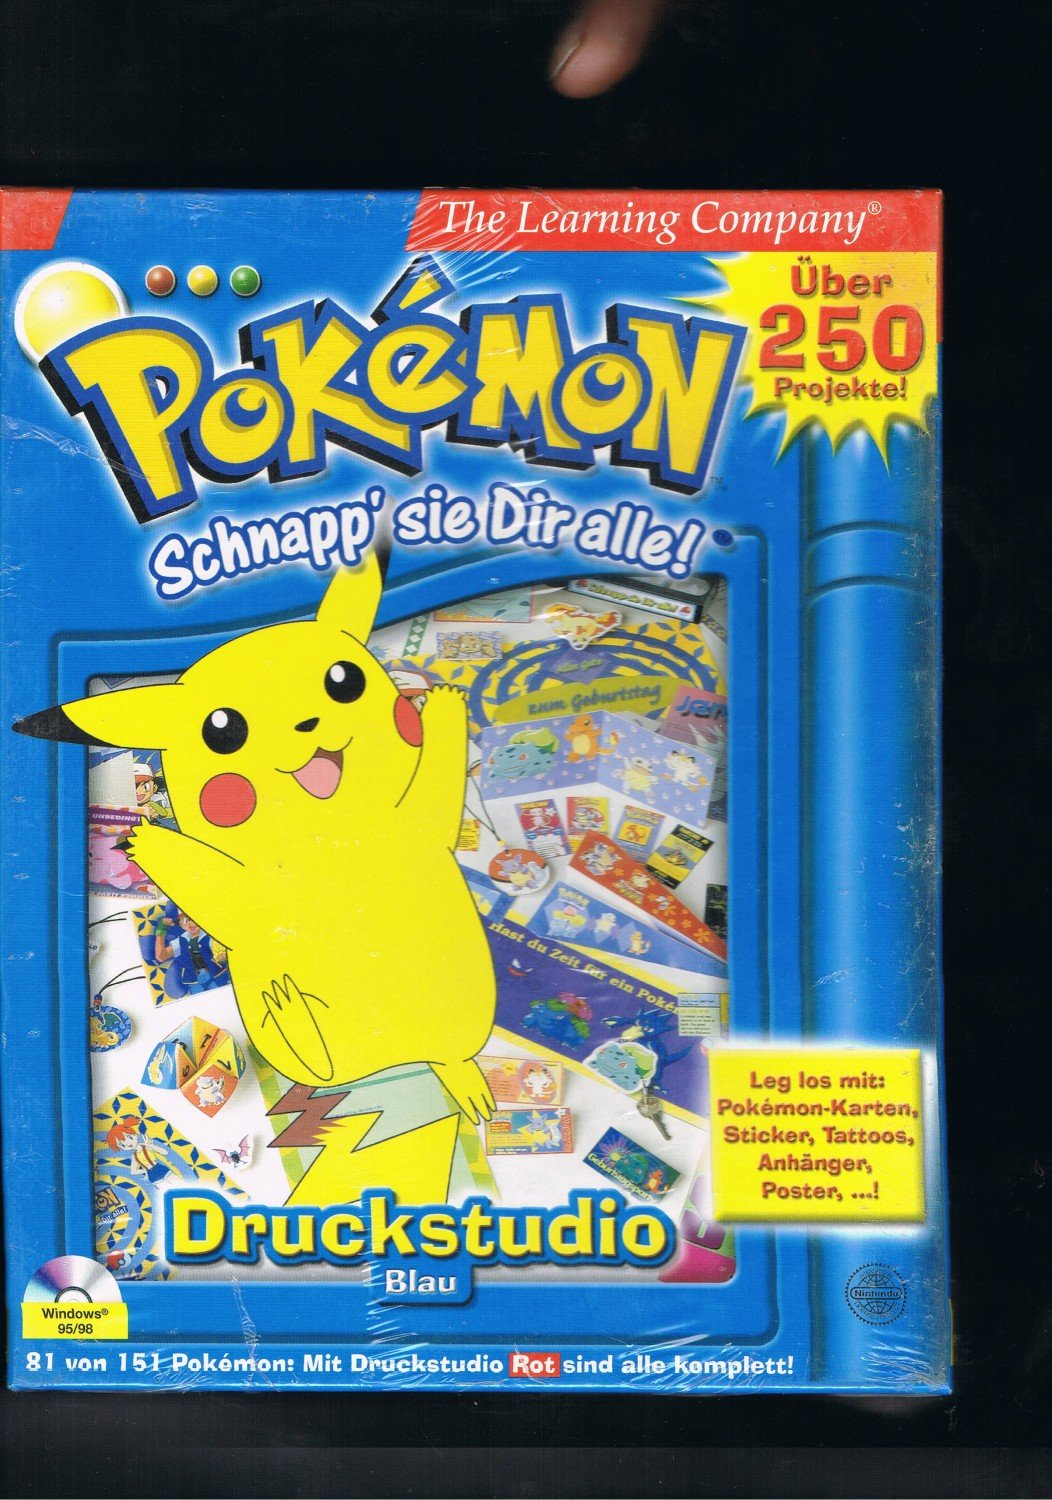 pokemon schnapp 39 sie dir alle nintendo 1995 1996 and 1998 nintendo spiel neu kaufen. Black Bedroom Furniture Sets. Home Design Ideas